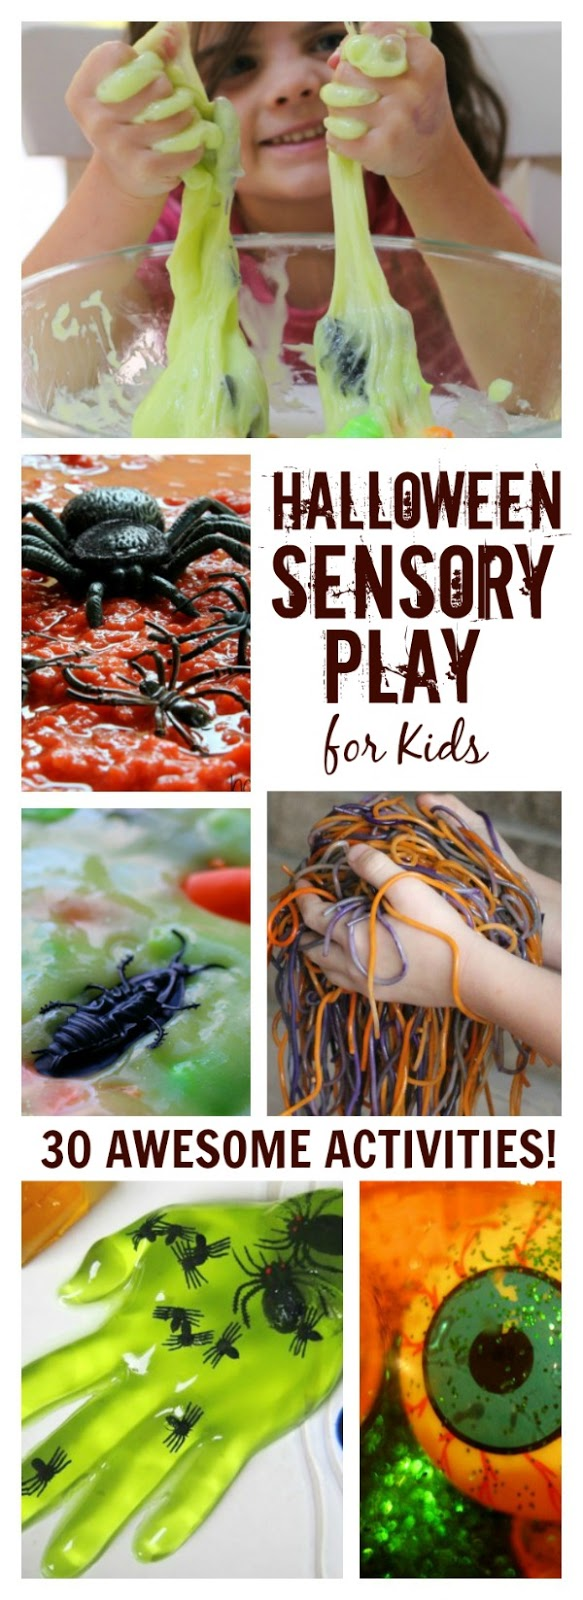 From goblin guts to ghost mud here are 30 AWESOME HALLOWEEN SENSORY ACTIVITIES FOR KIDS